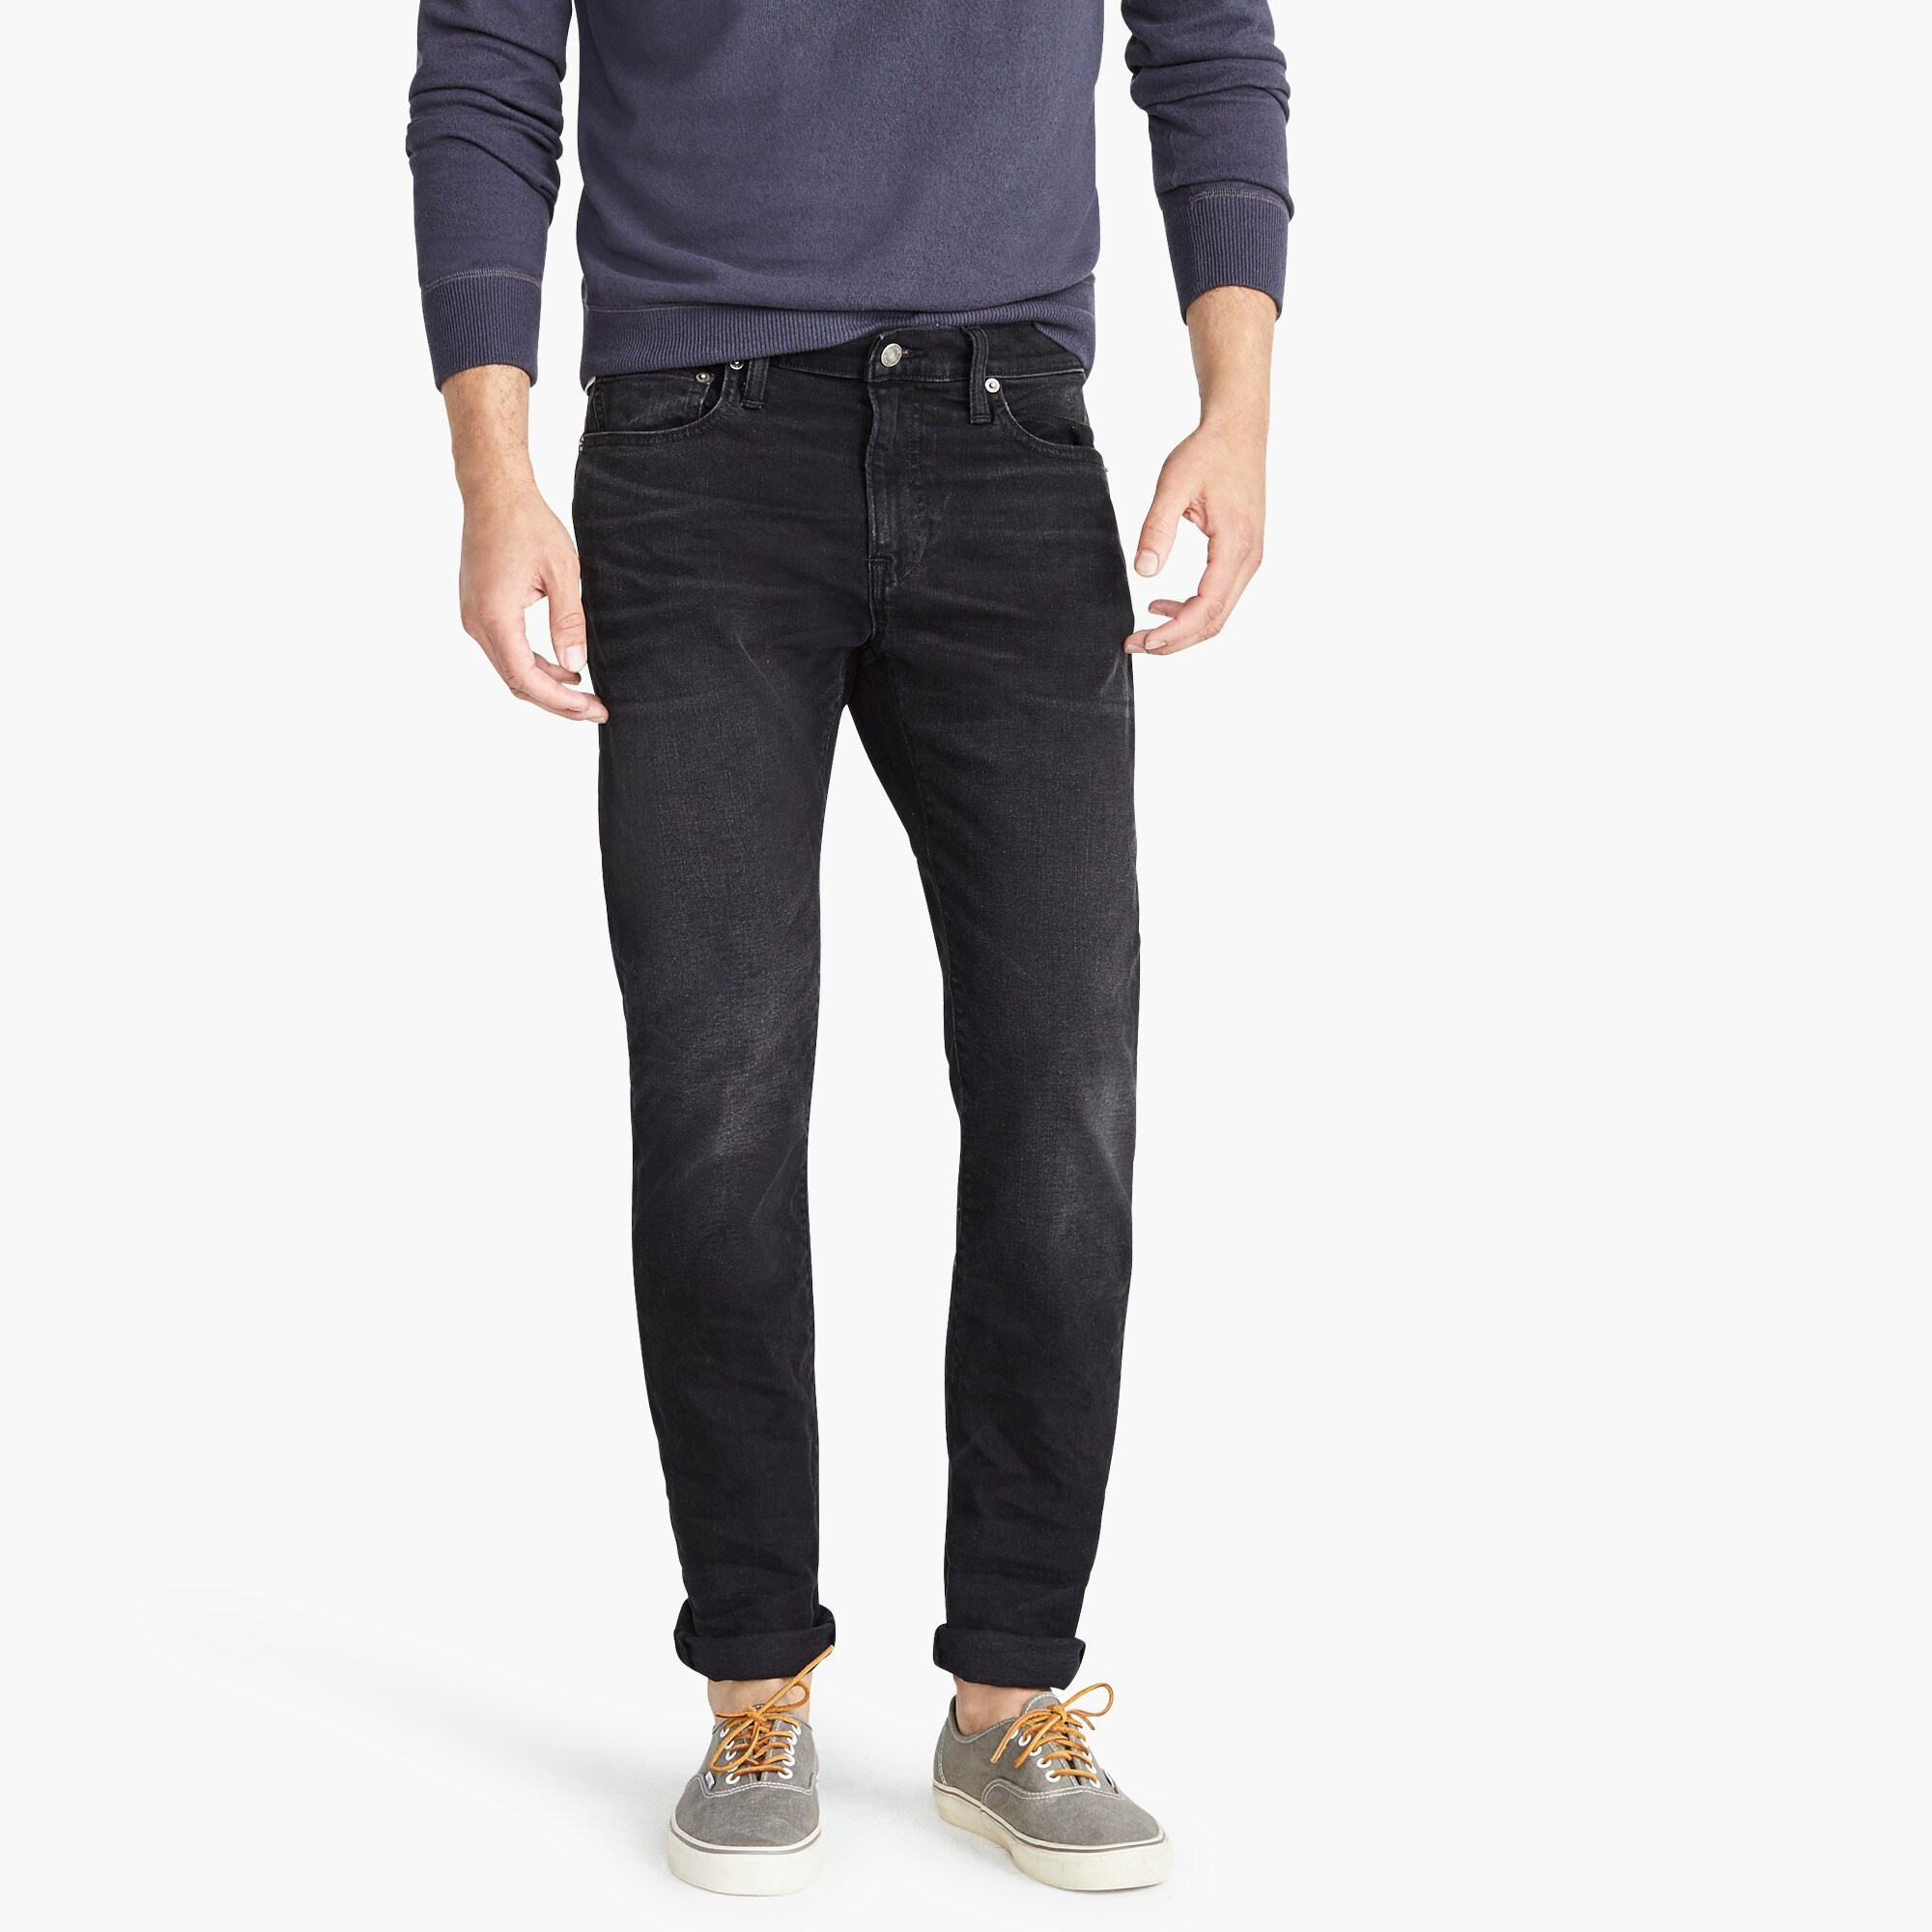 mens 484 Slim-fit stretch jean in washed black